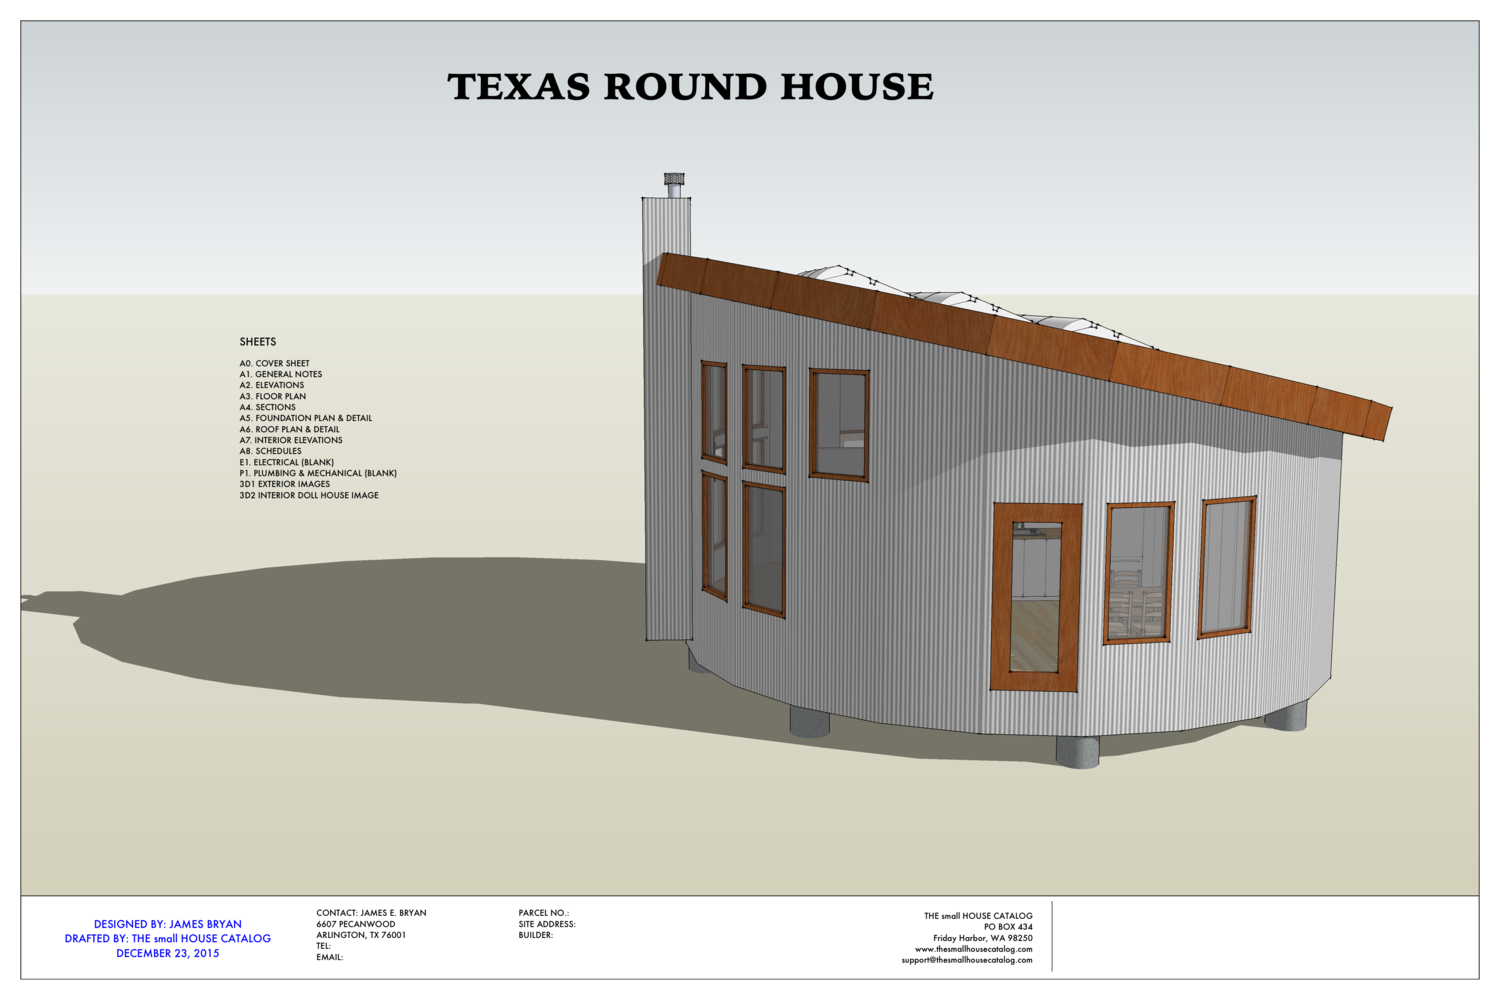 1 Story 1 Bedroom 1 Bath Round House Plan This Is A Free Pdf Building Plan Download Post Pier Foundati Round House Plans Diy Tiny House Plans Round House